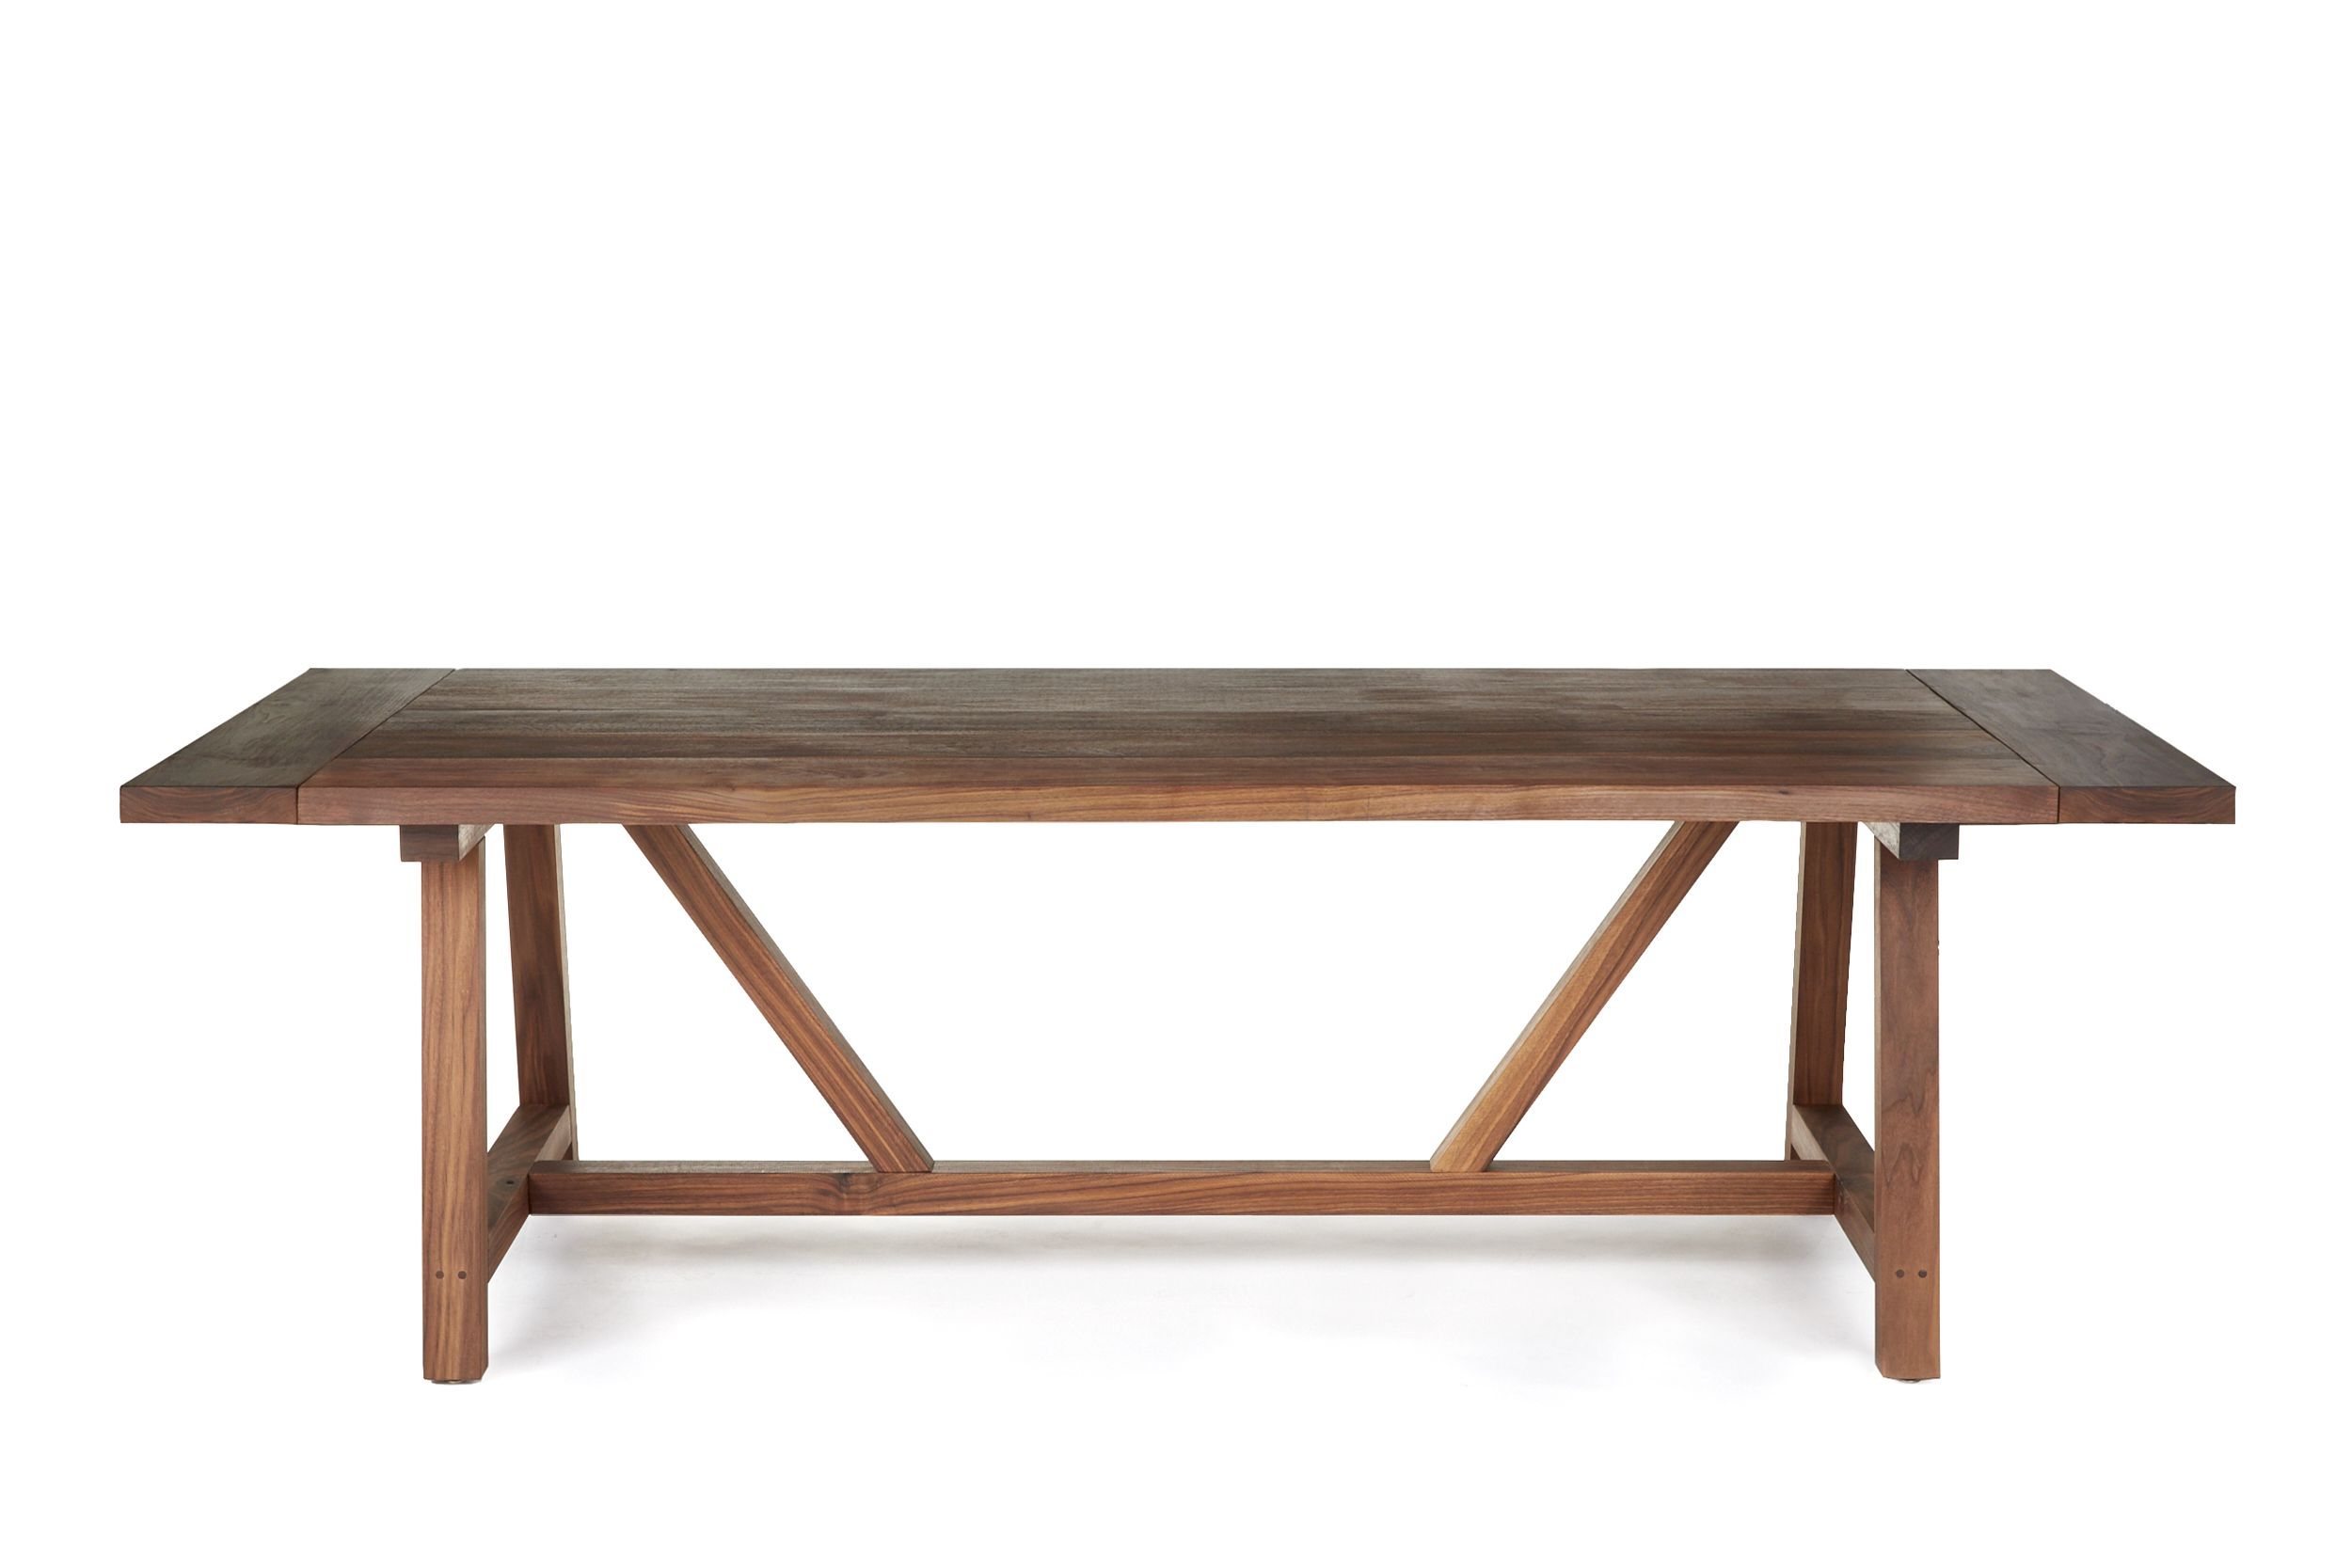 Walnut trestle dining table - Hand Made Solid Walnut Trestle Dining Table By This Old Wood Shop Custommade Com